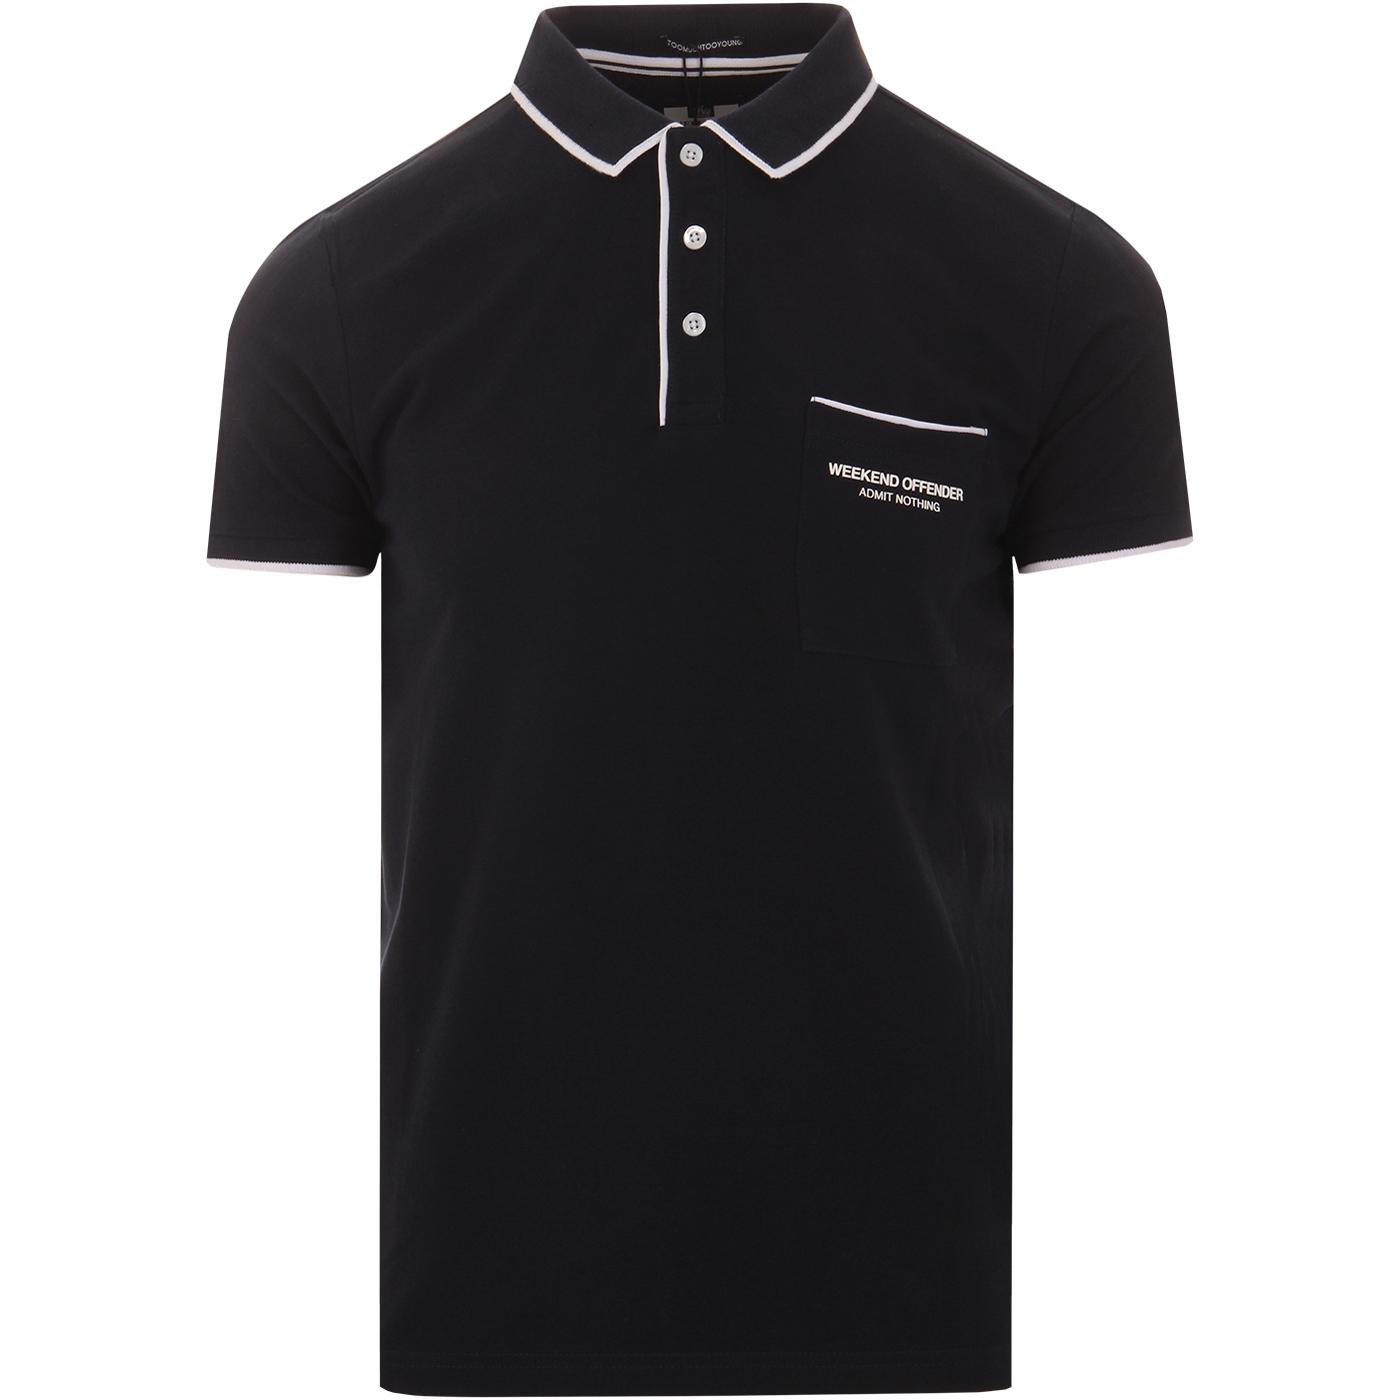 Oaxaca WEEKEND OFFENDER Tipped Mod Polo Shirt N